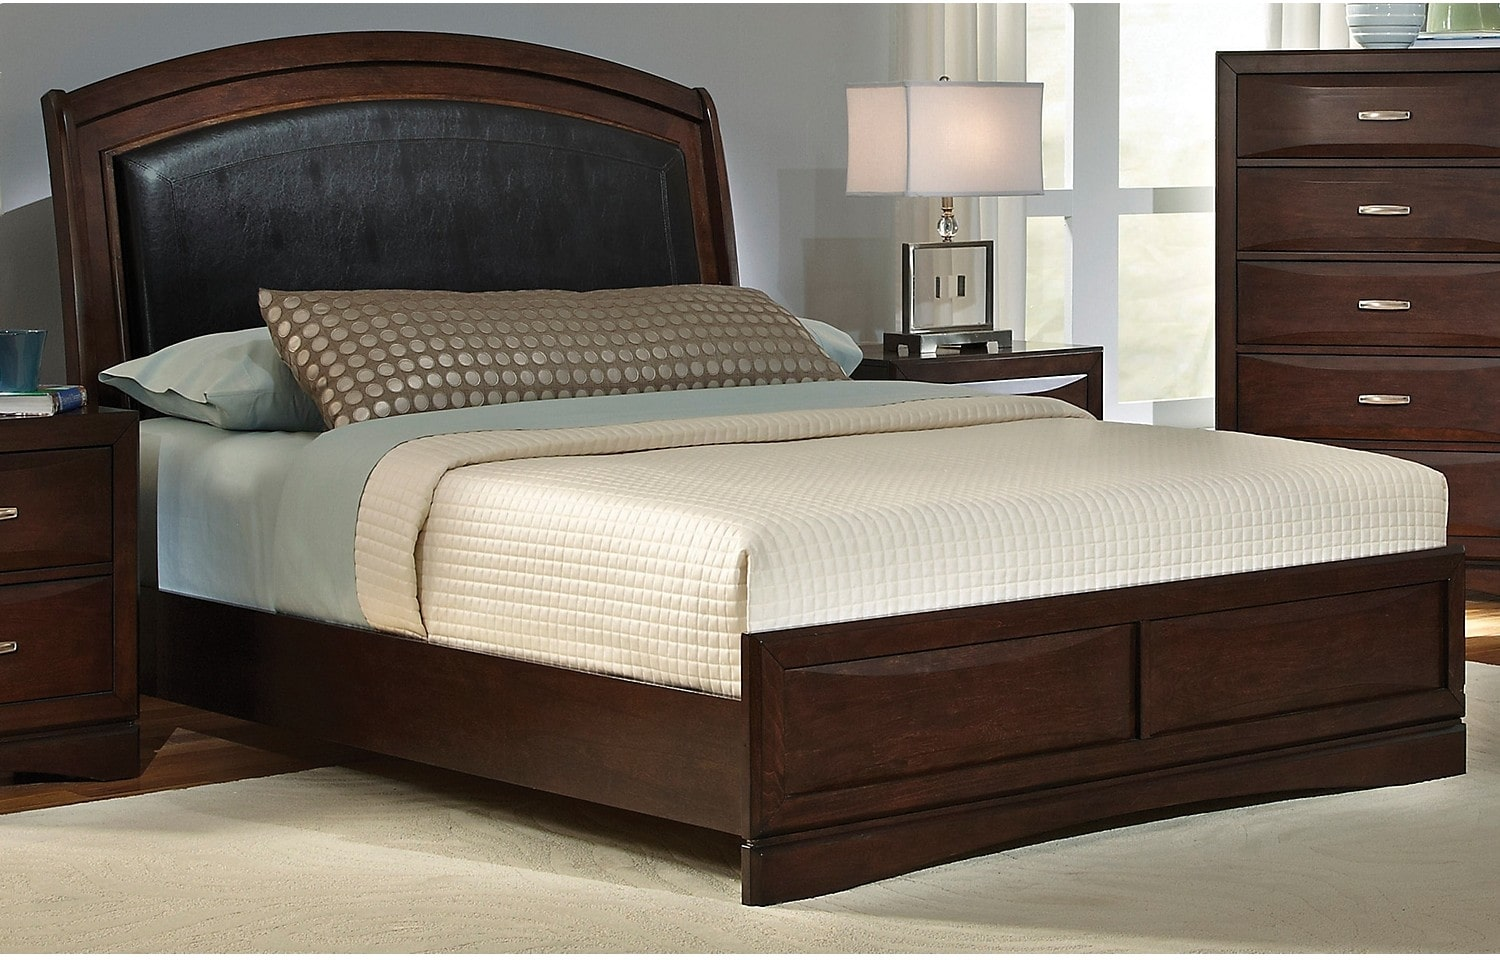 Bedroom Furniture - Beverly Queen Bed